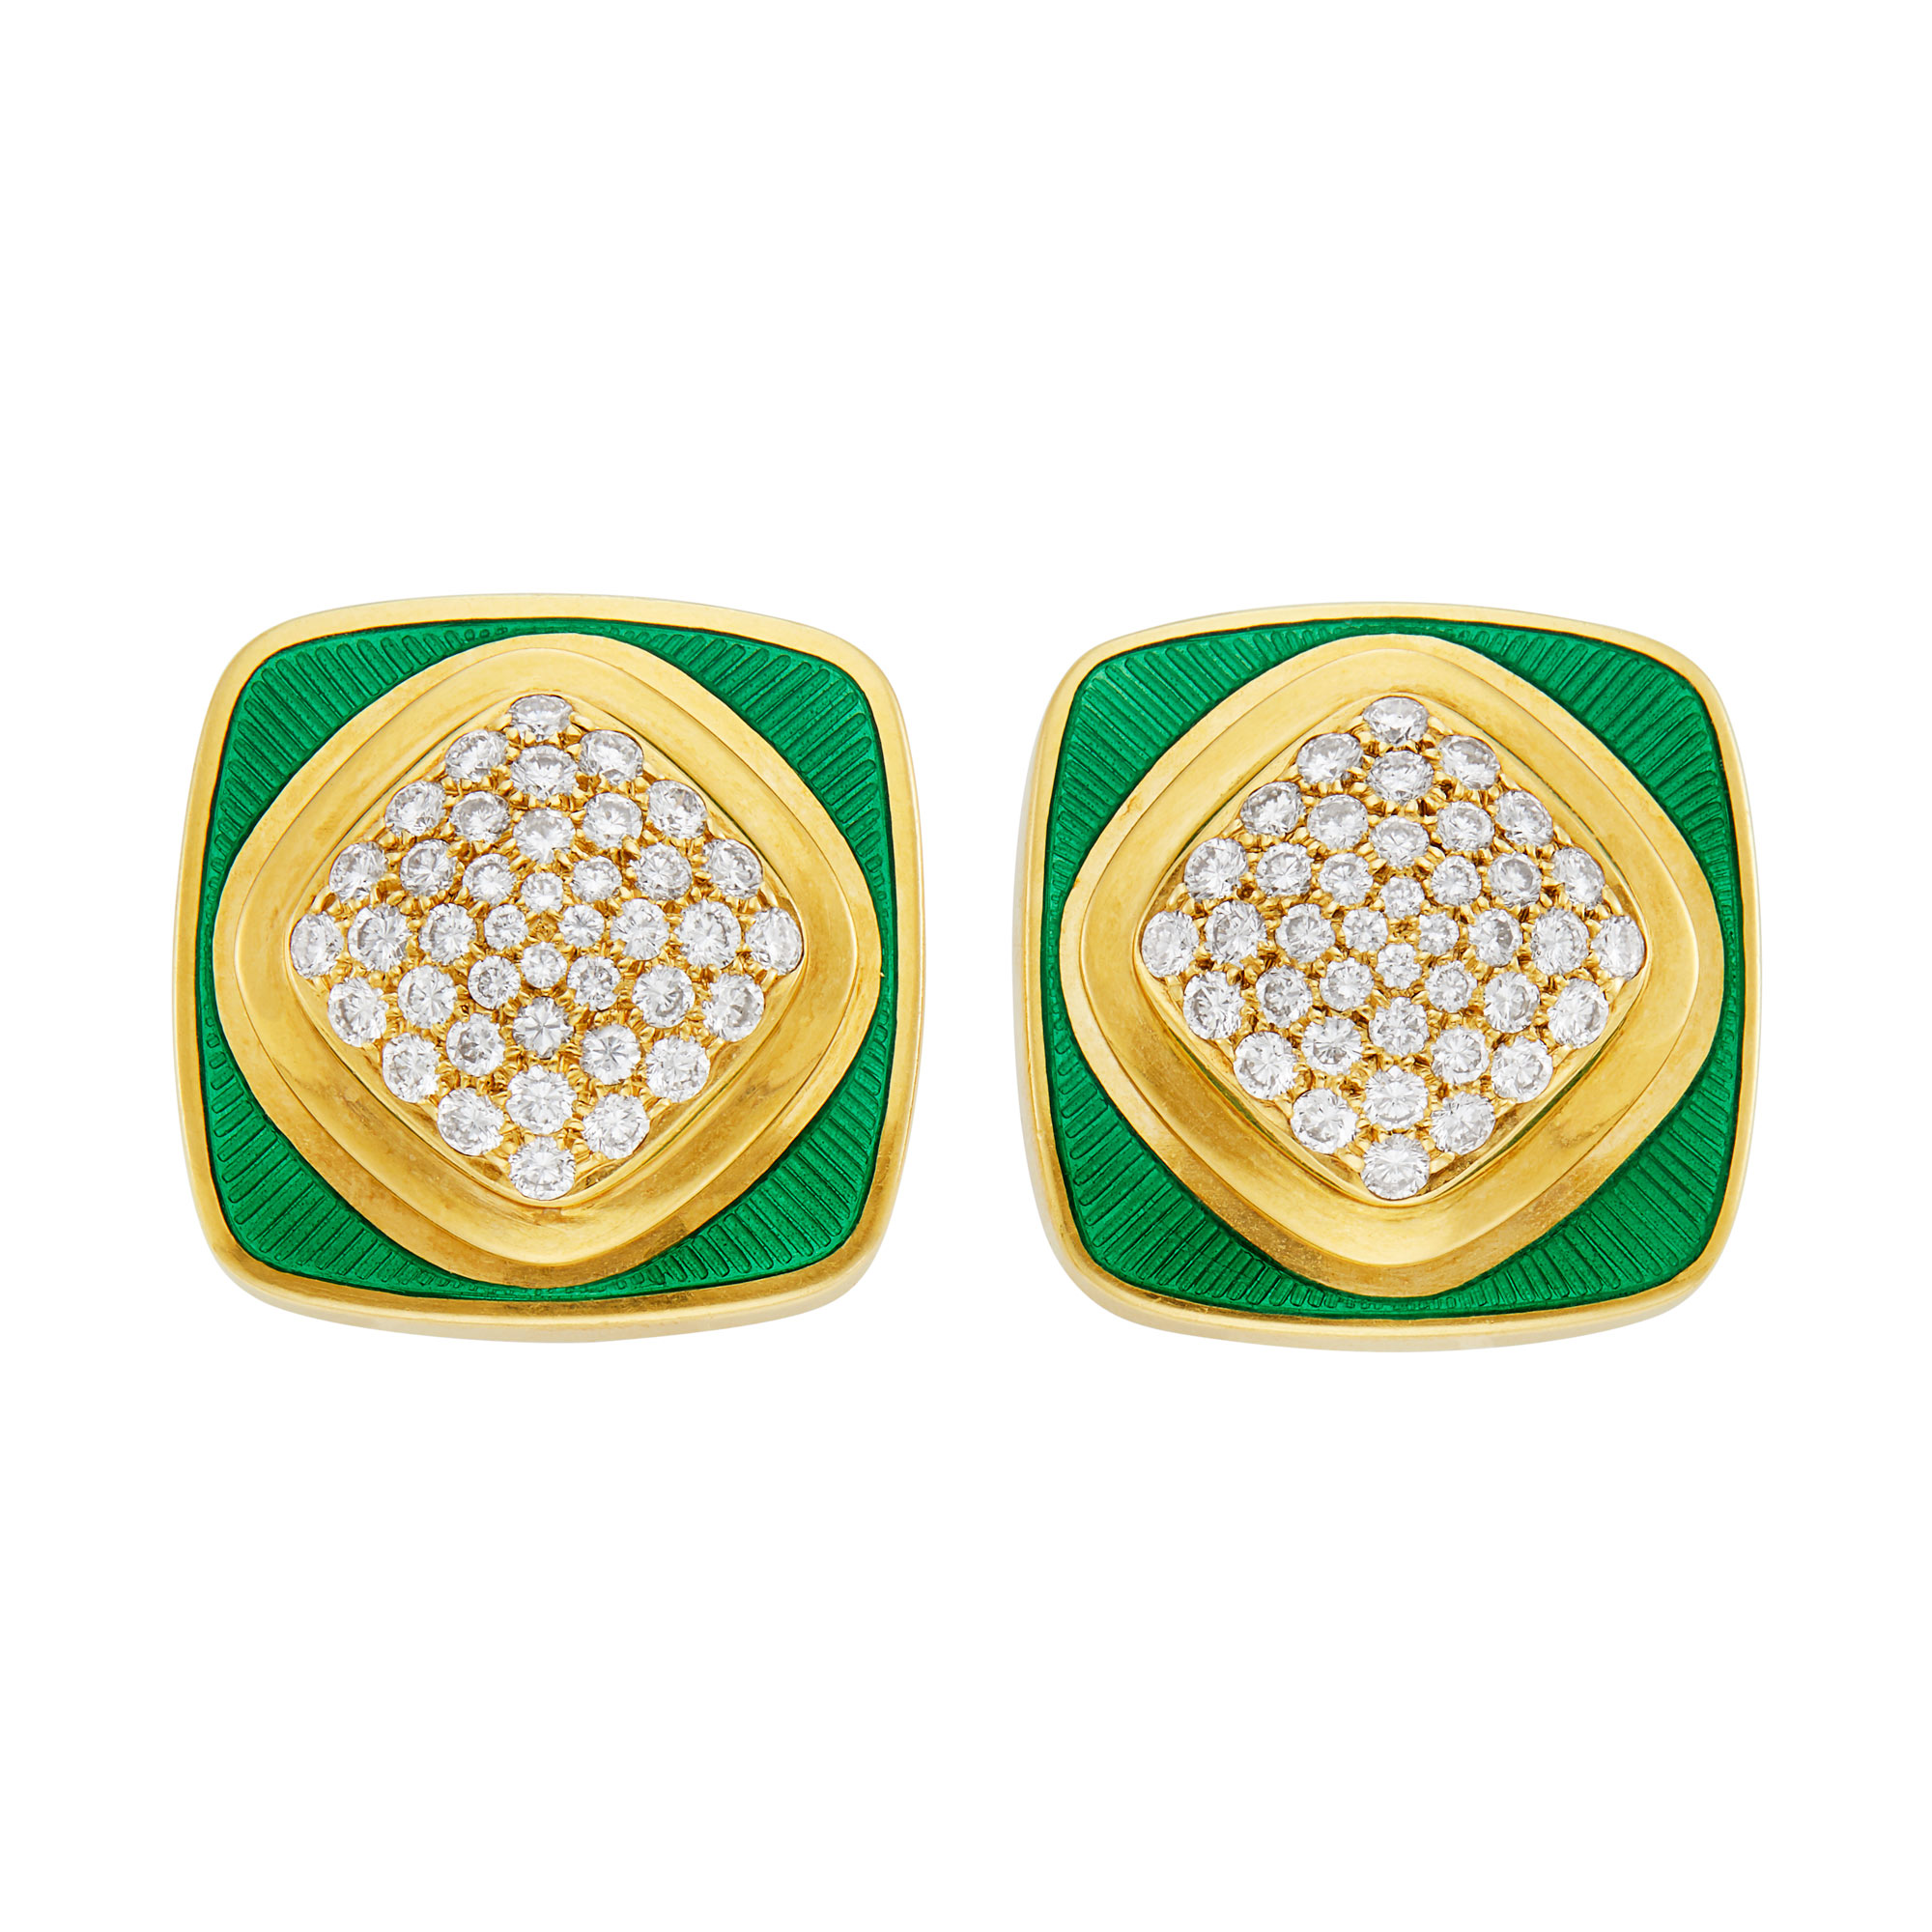 Lot image - Pair of Gold, Diamond and Green Enamel Earclips, De Vroomen